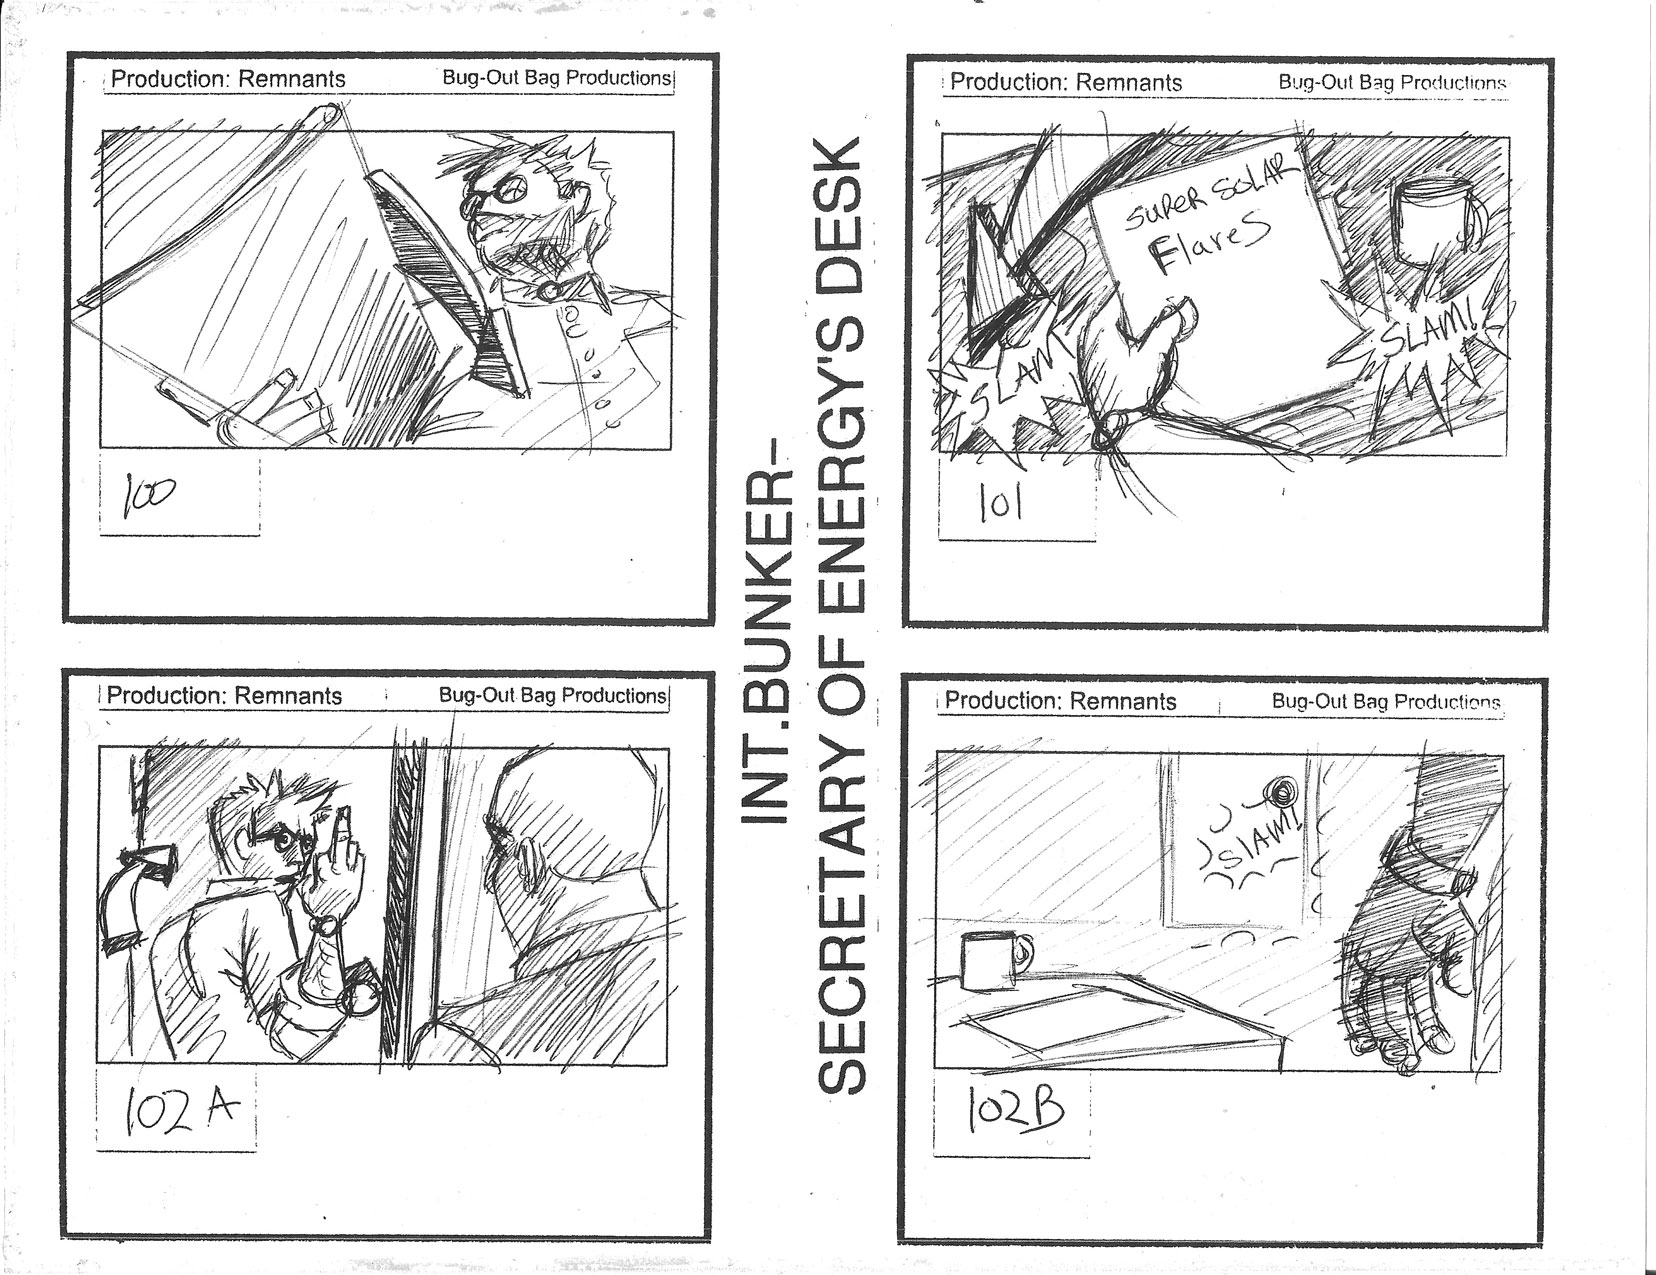 Remnants_storyboards_037.jpg